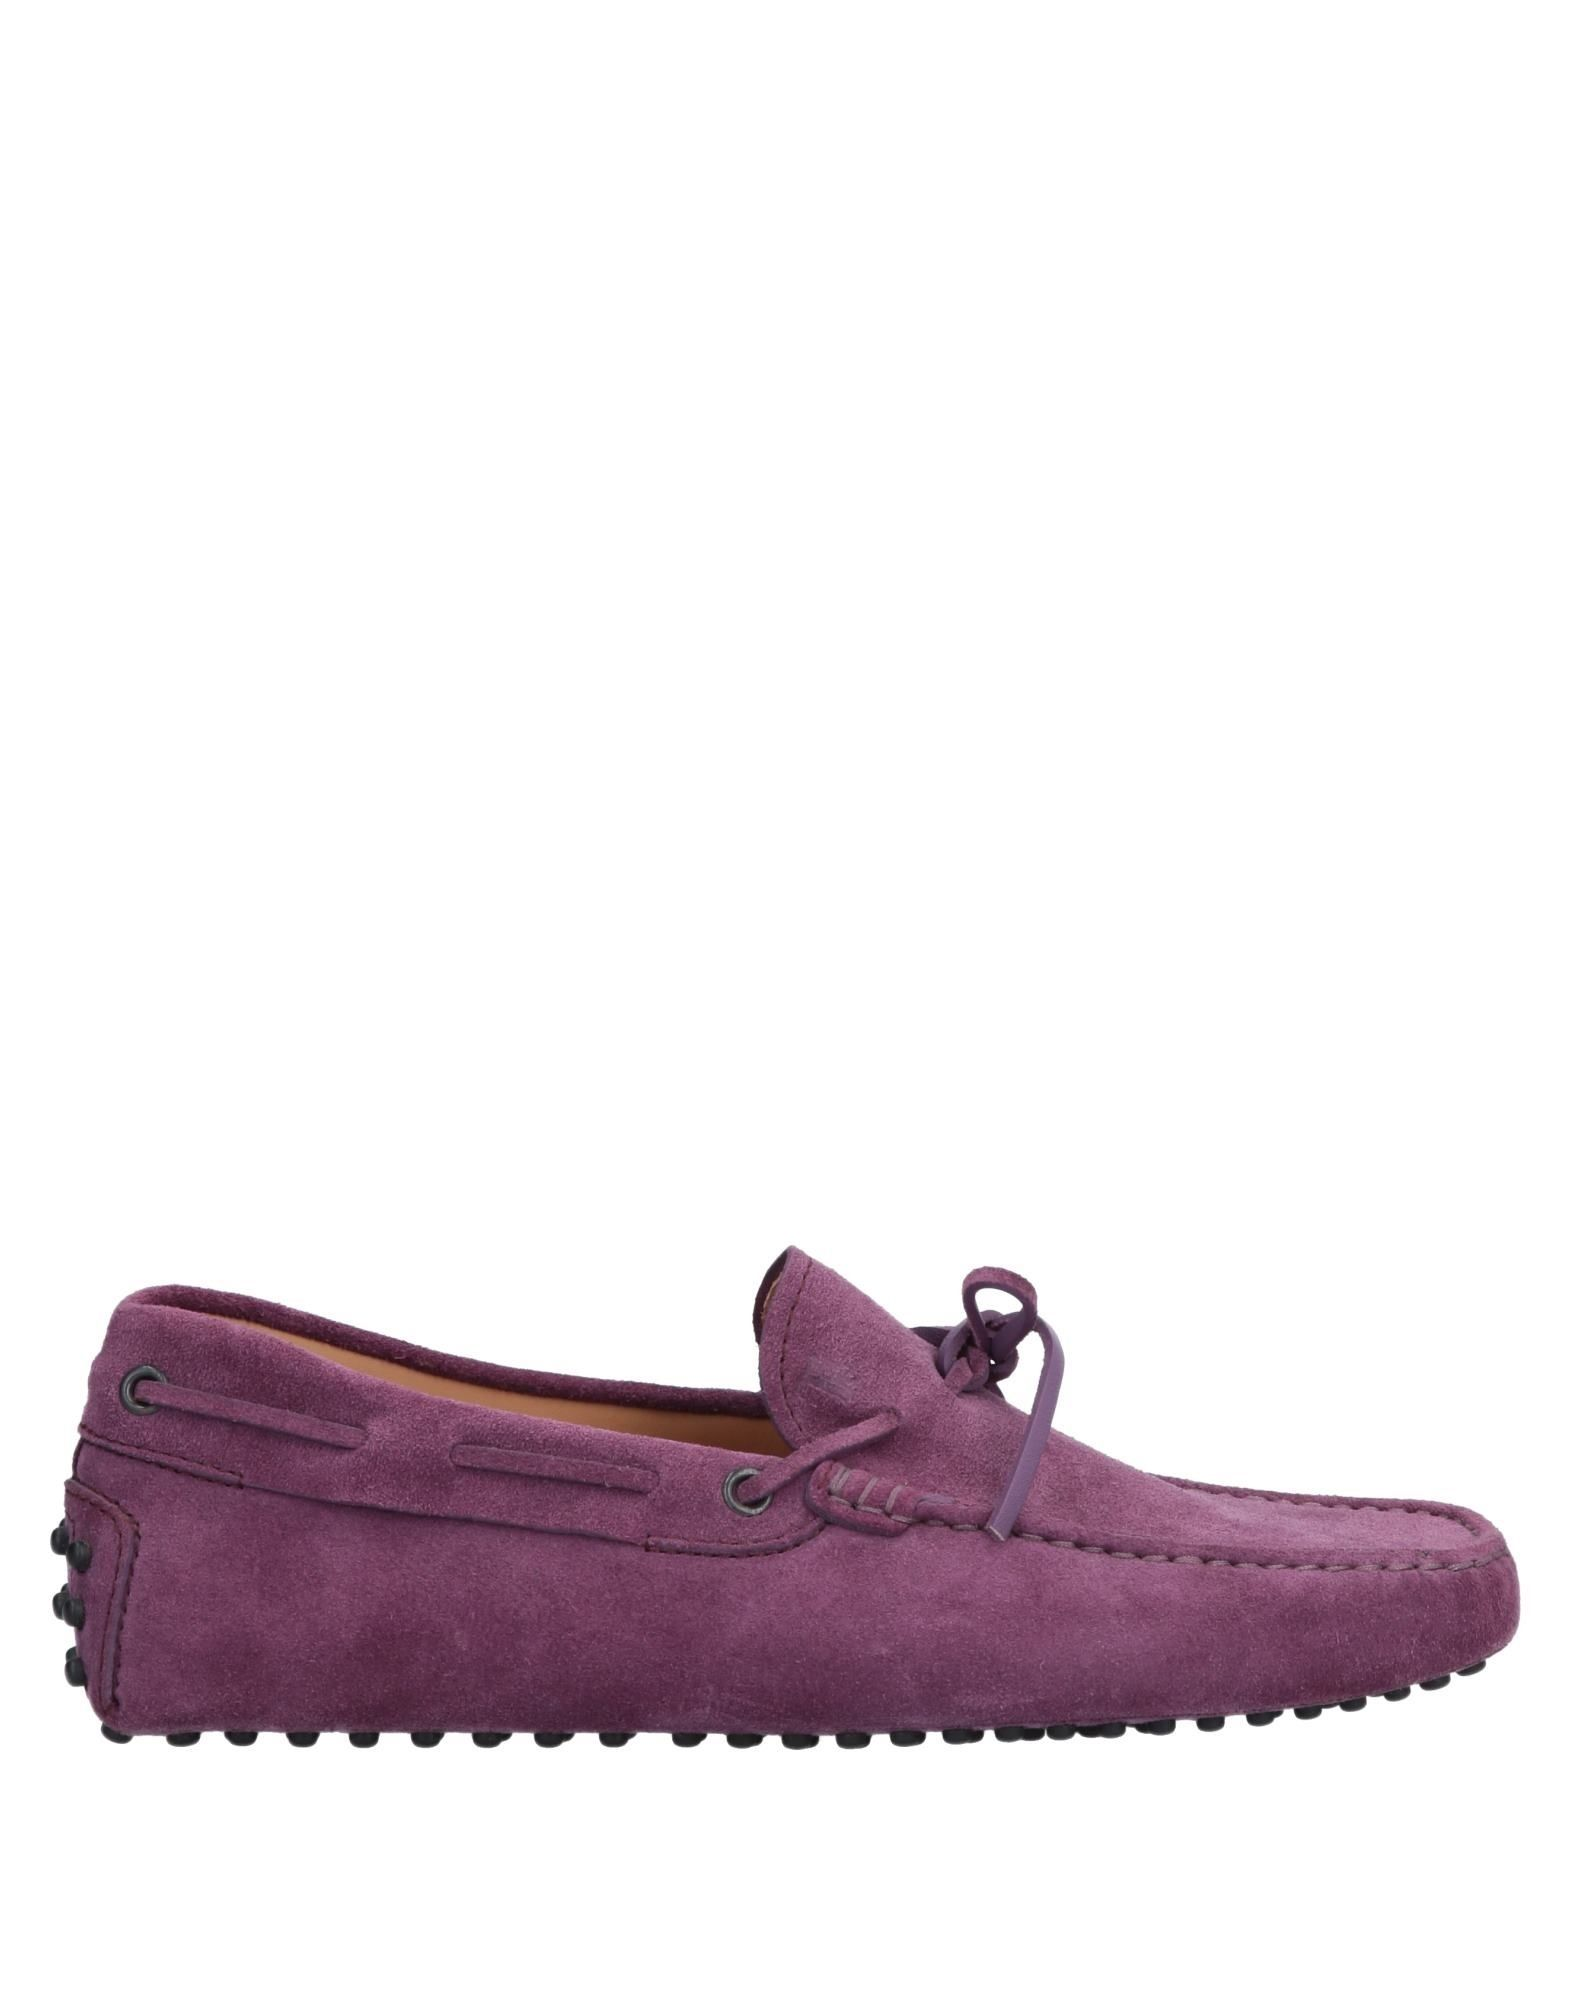 Tod's Purple Leather Loafers